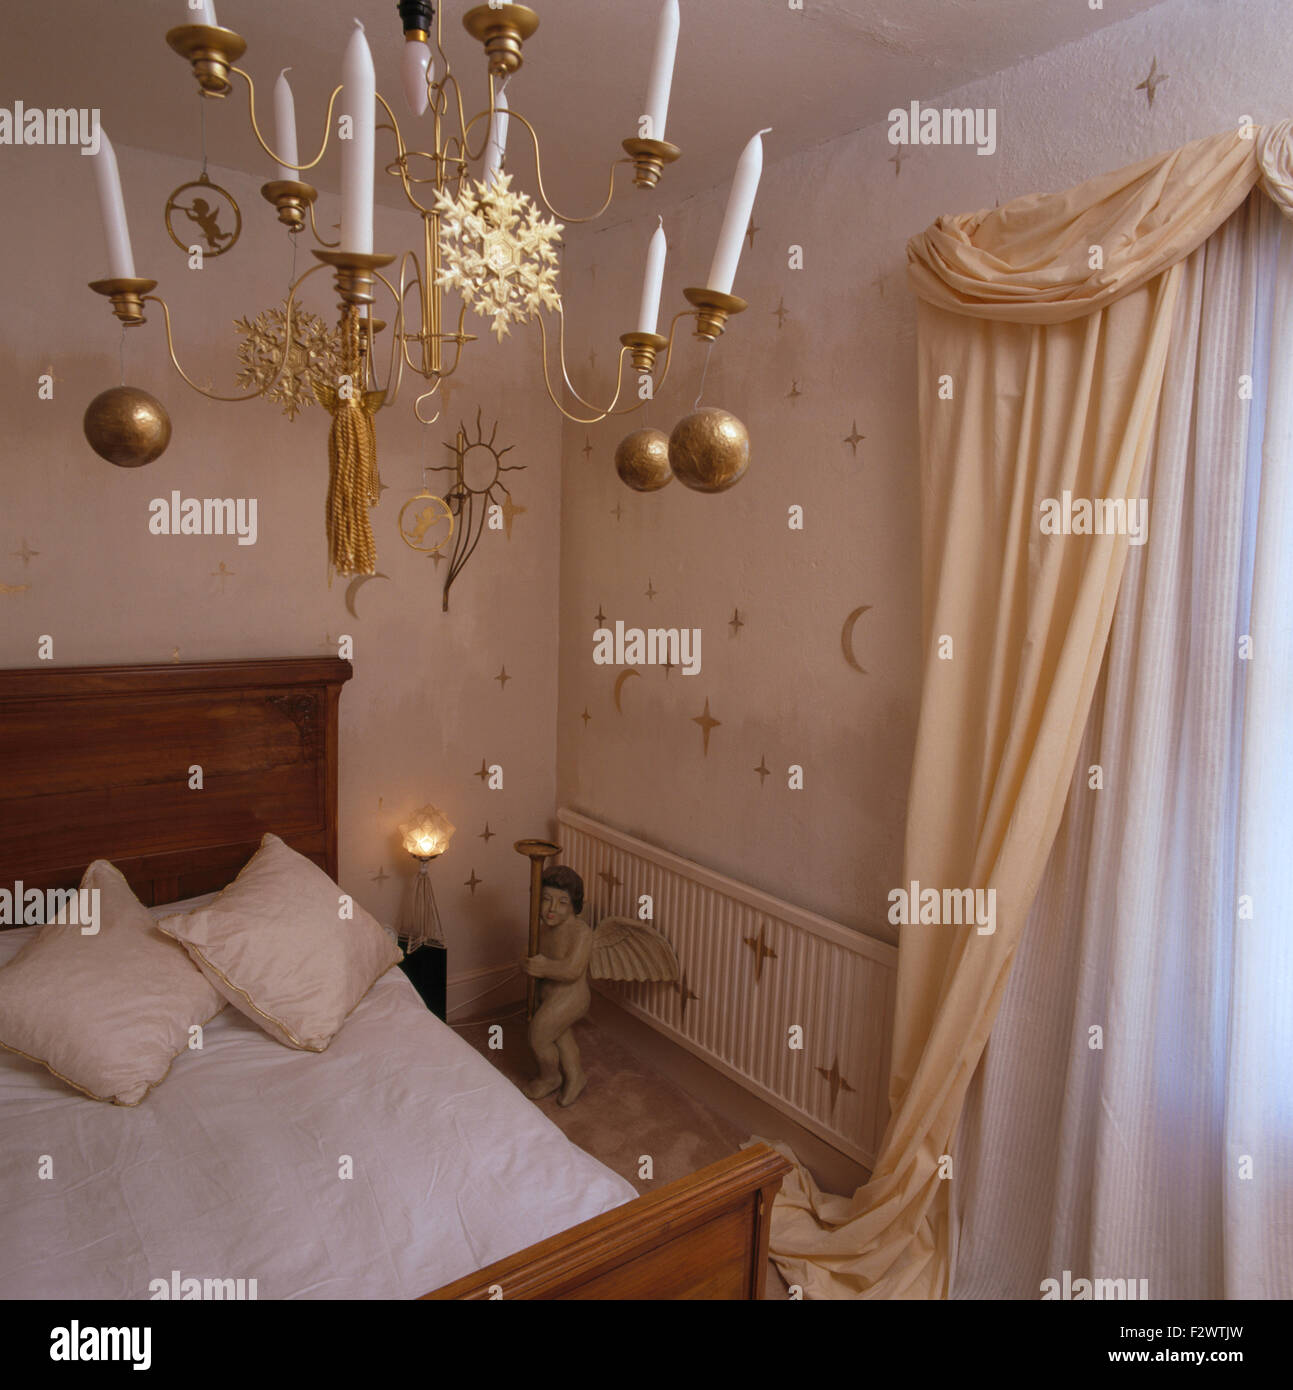 chandelier chandeliers stockfotos chandelier chandeliers bilder seite 3 alamy. Black Bedroom Furniture Sets. Home Design Ideas